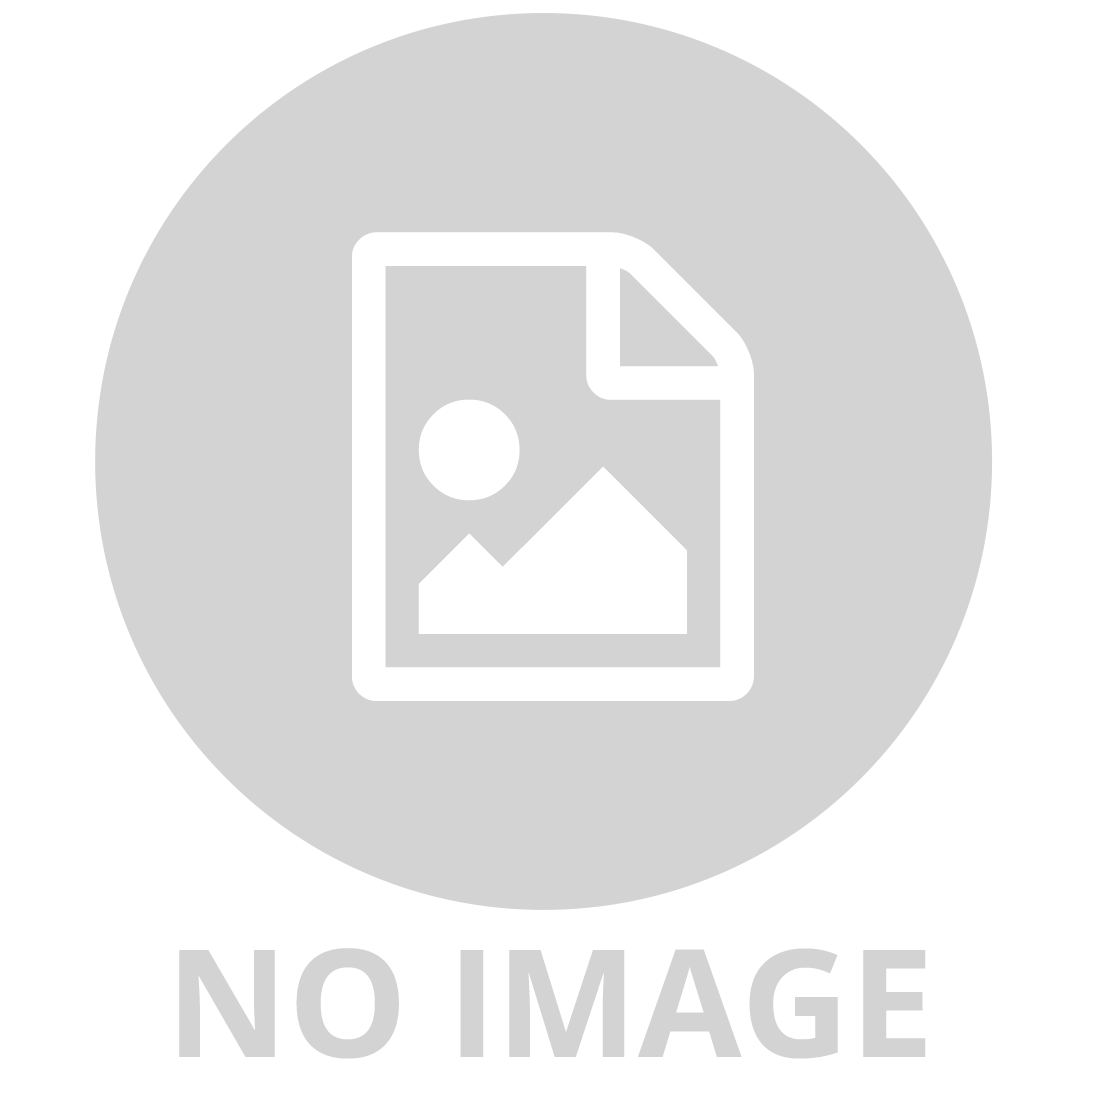 BACHMANN OO/HO DIGITAL TRAIN STARTER SET